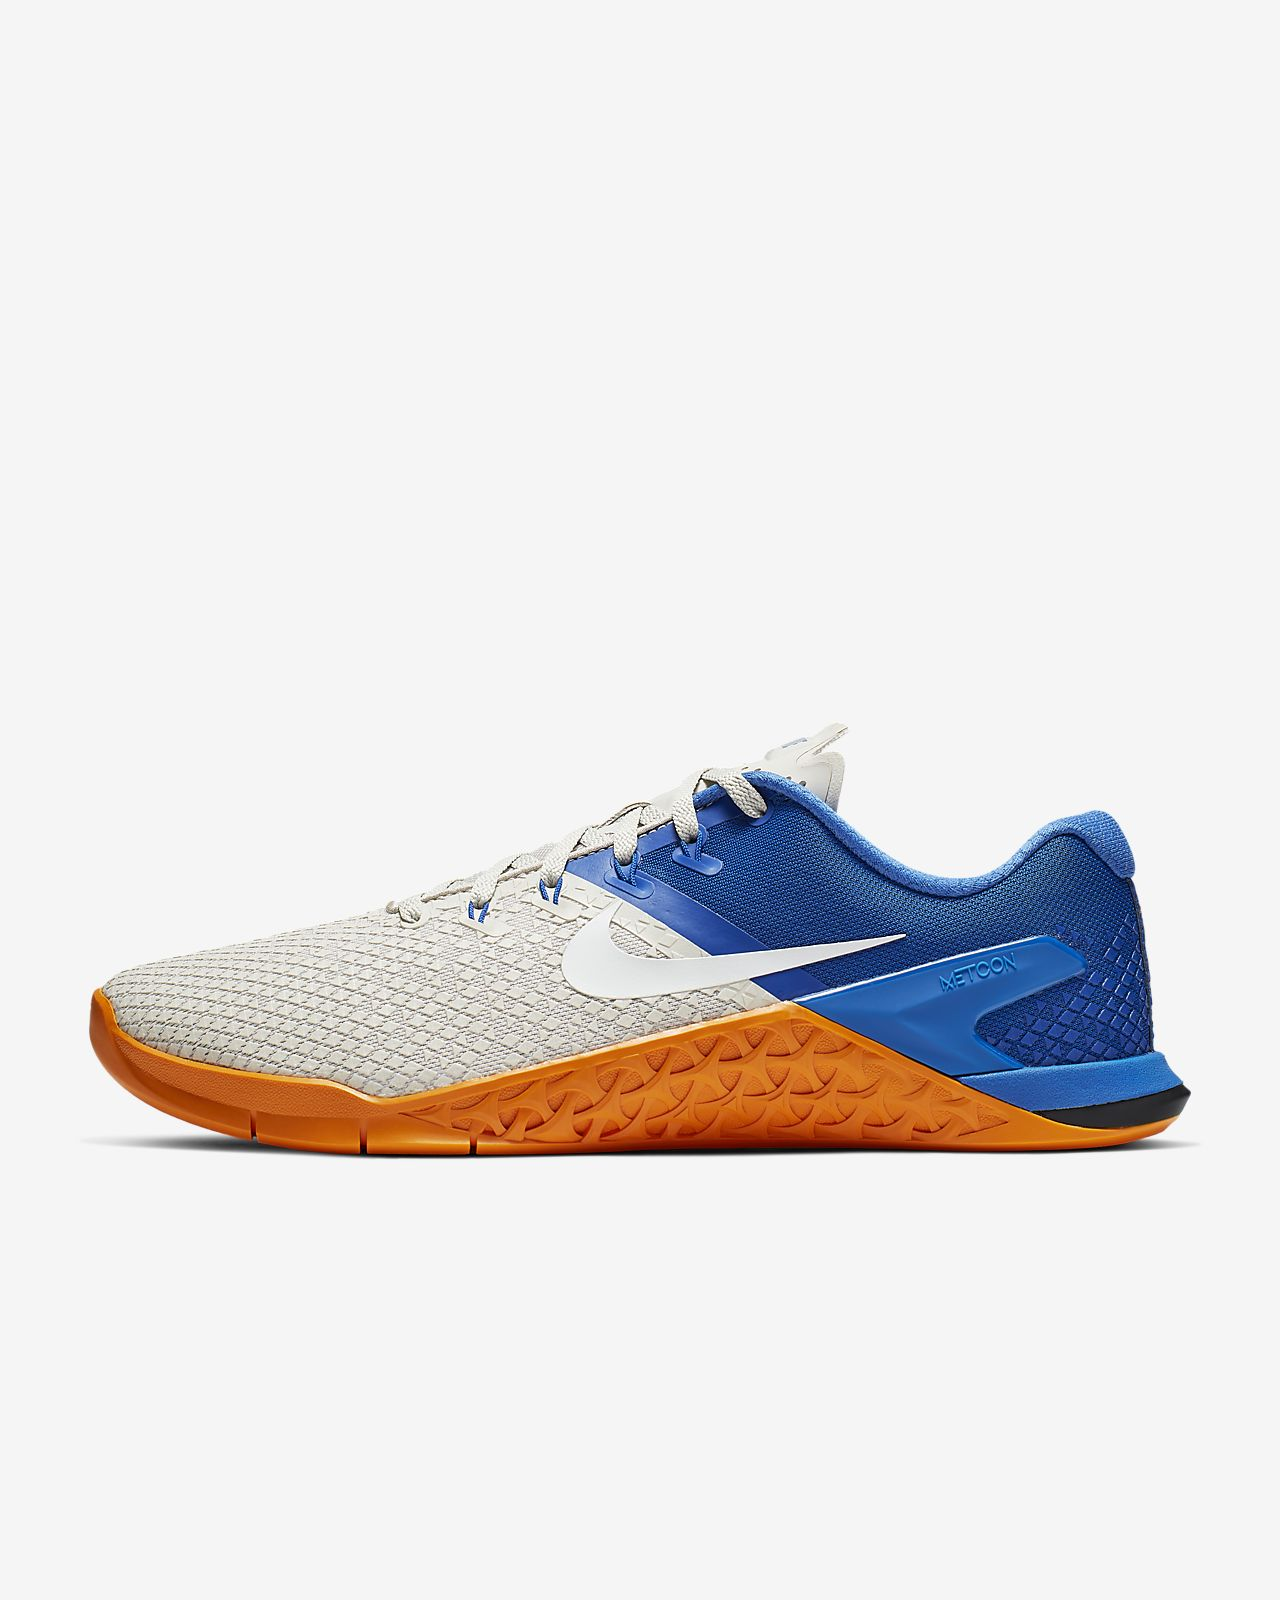 sneakers for cheap 3c312 ac83a Men s Training Shoe. Nike Metcon 4 XD